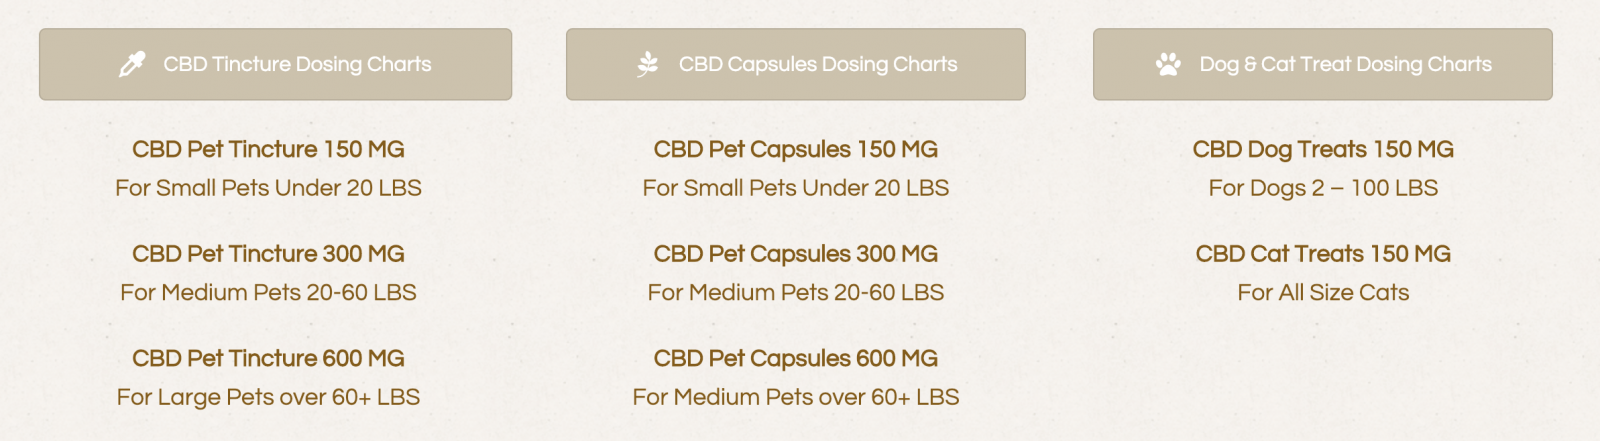 Holistapet CBD Dosage Guide